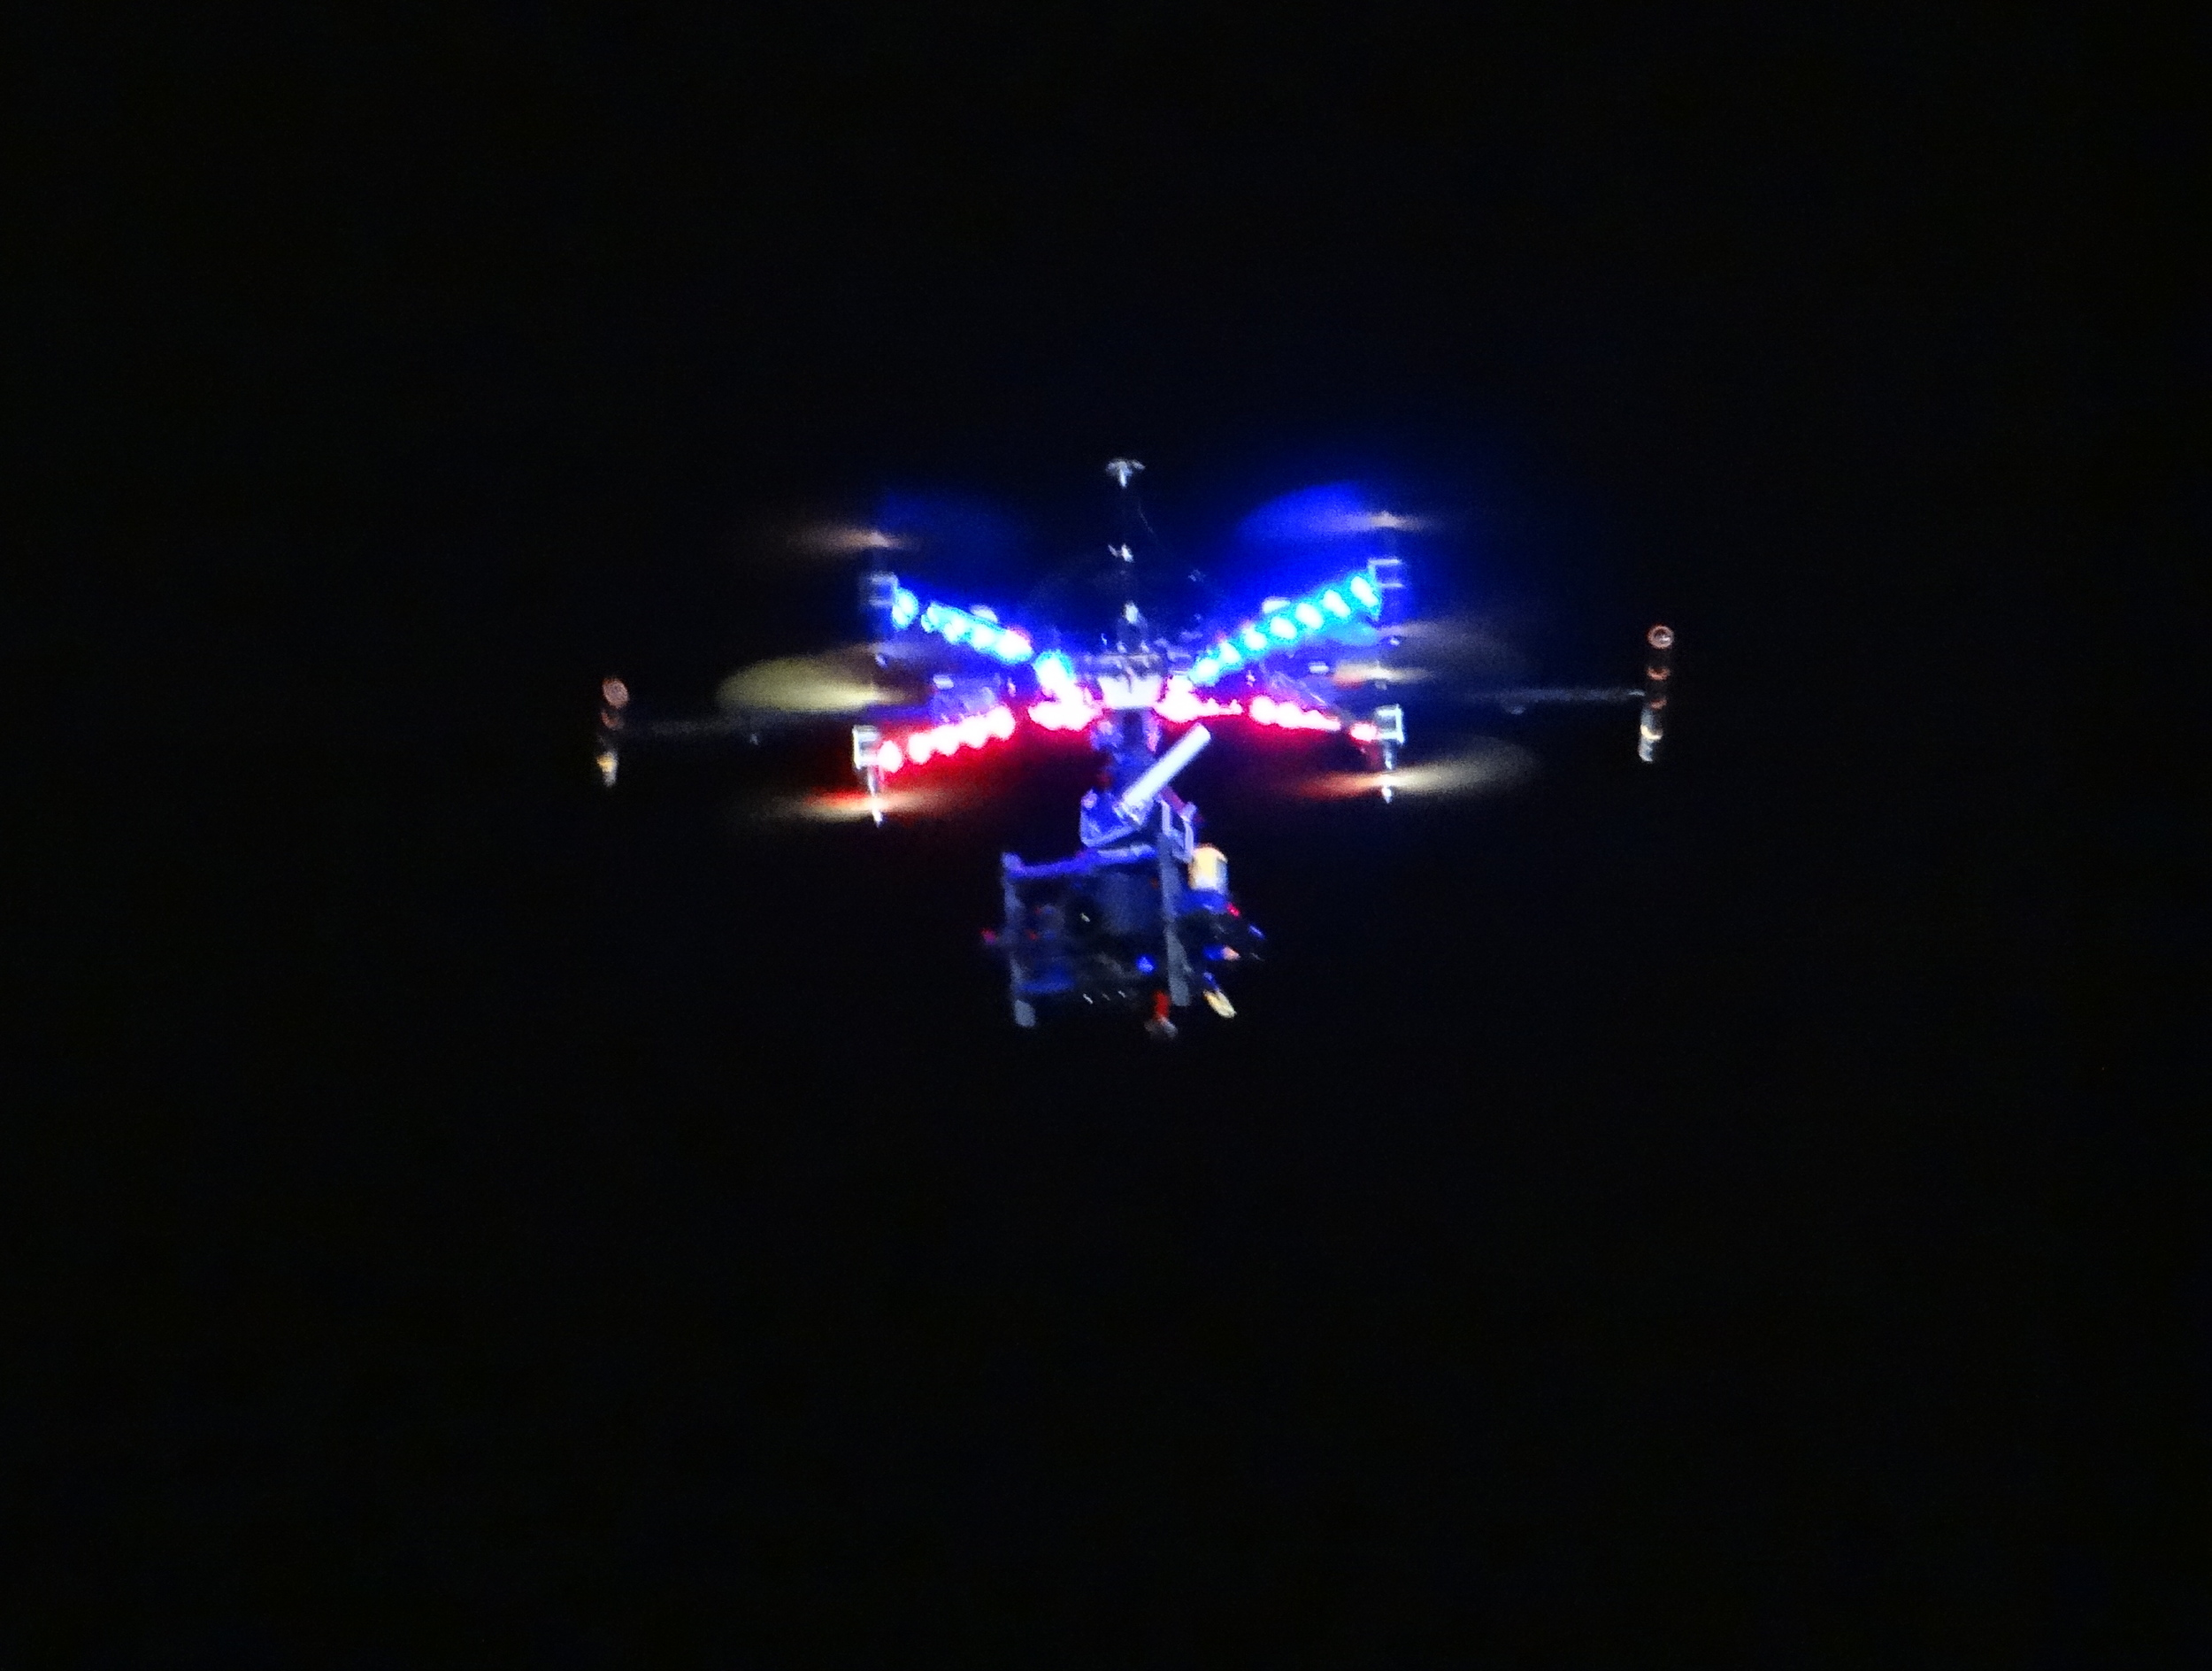 We were not alone covering the event! Airbus was flying this quadcopter drone above the site during the ceremony!